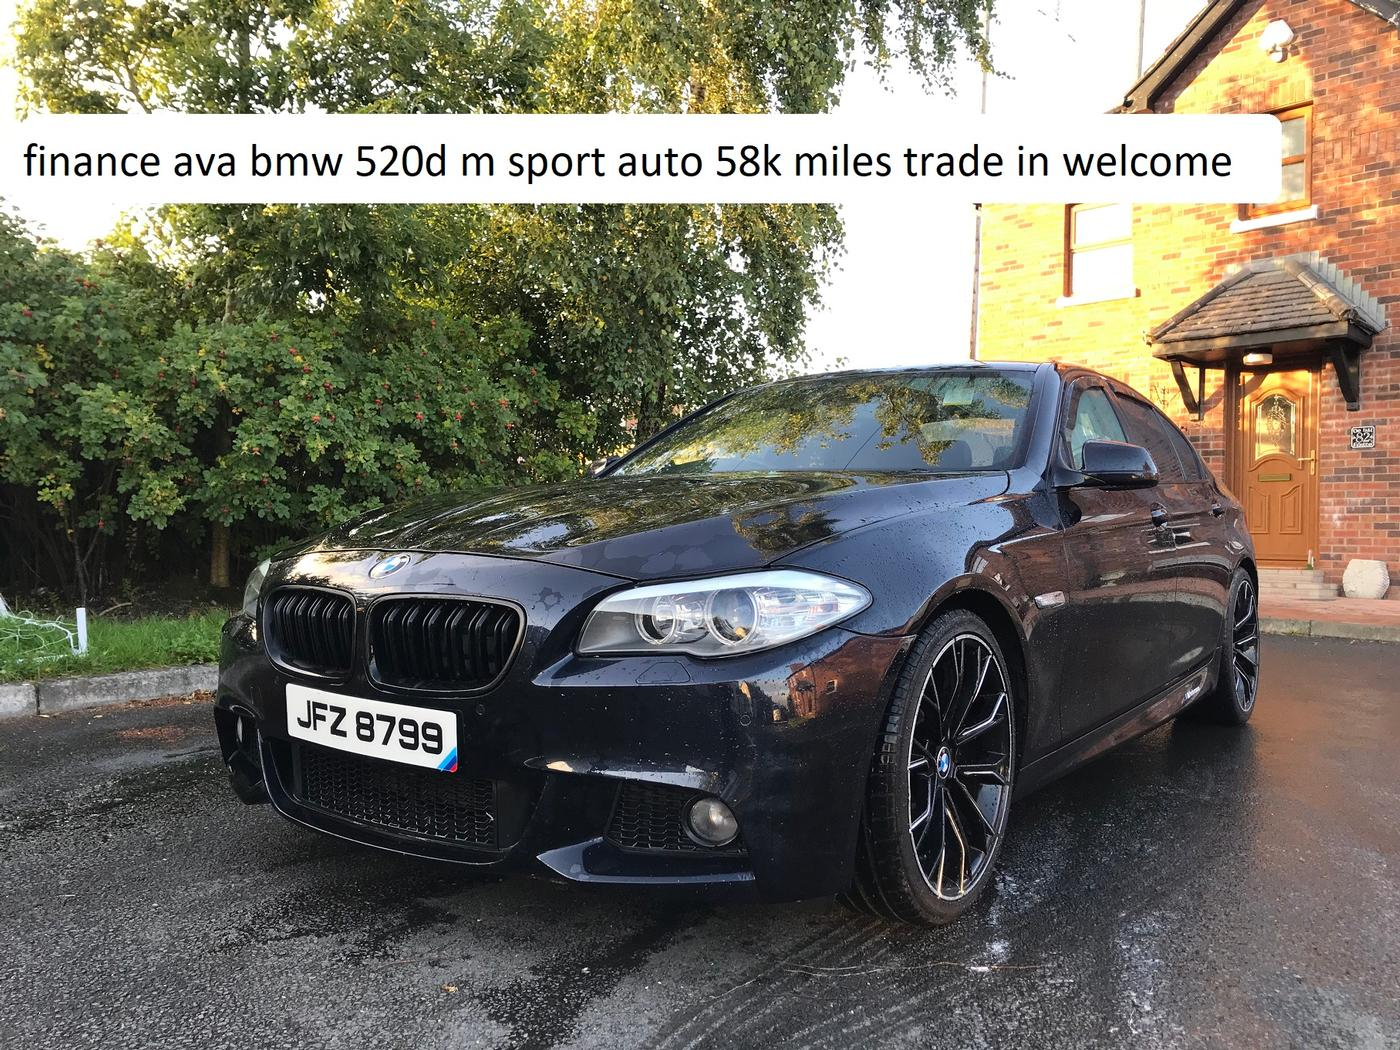 2012 bmw 520d m sport only 58k miles